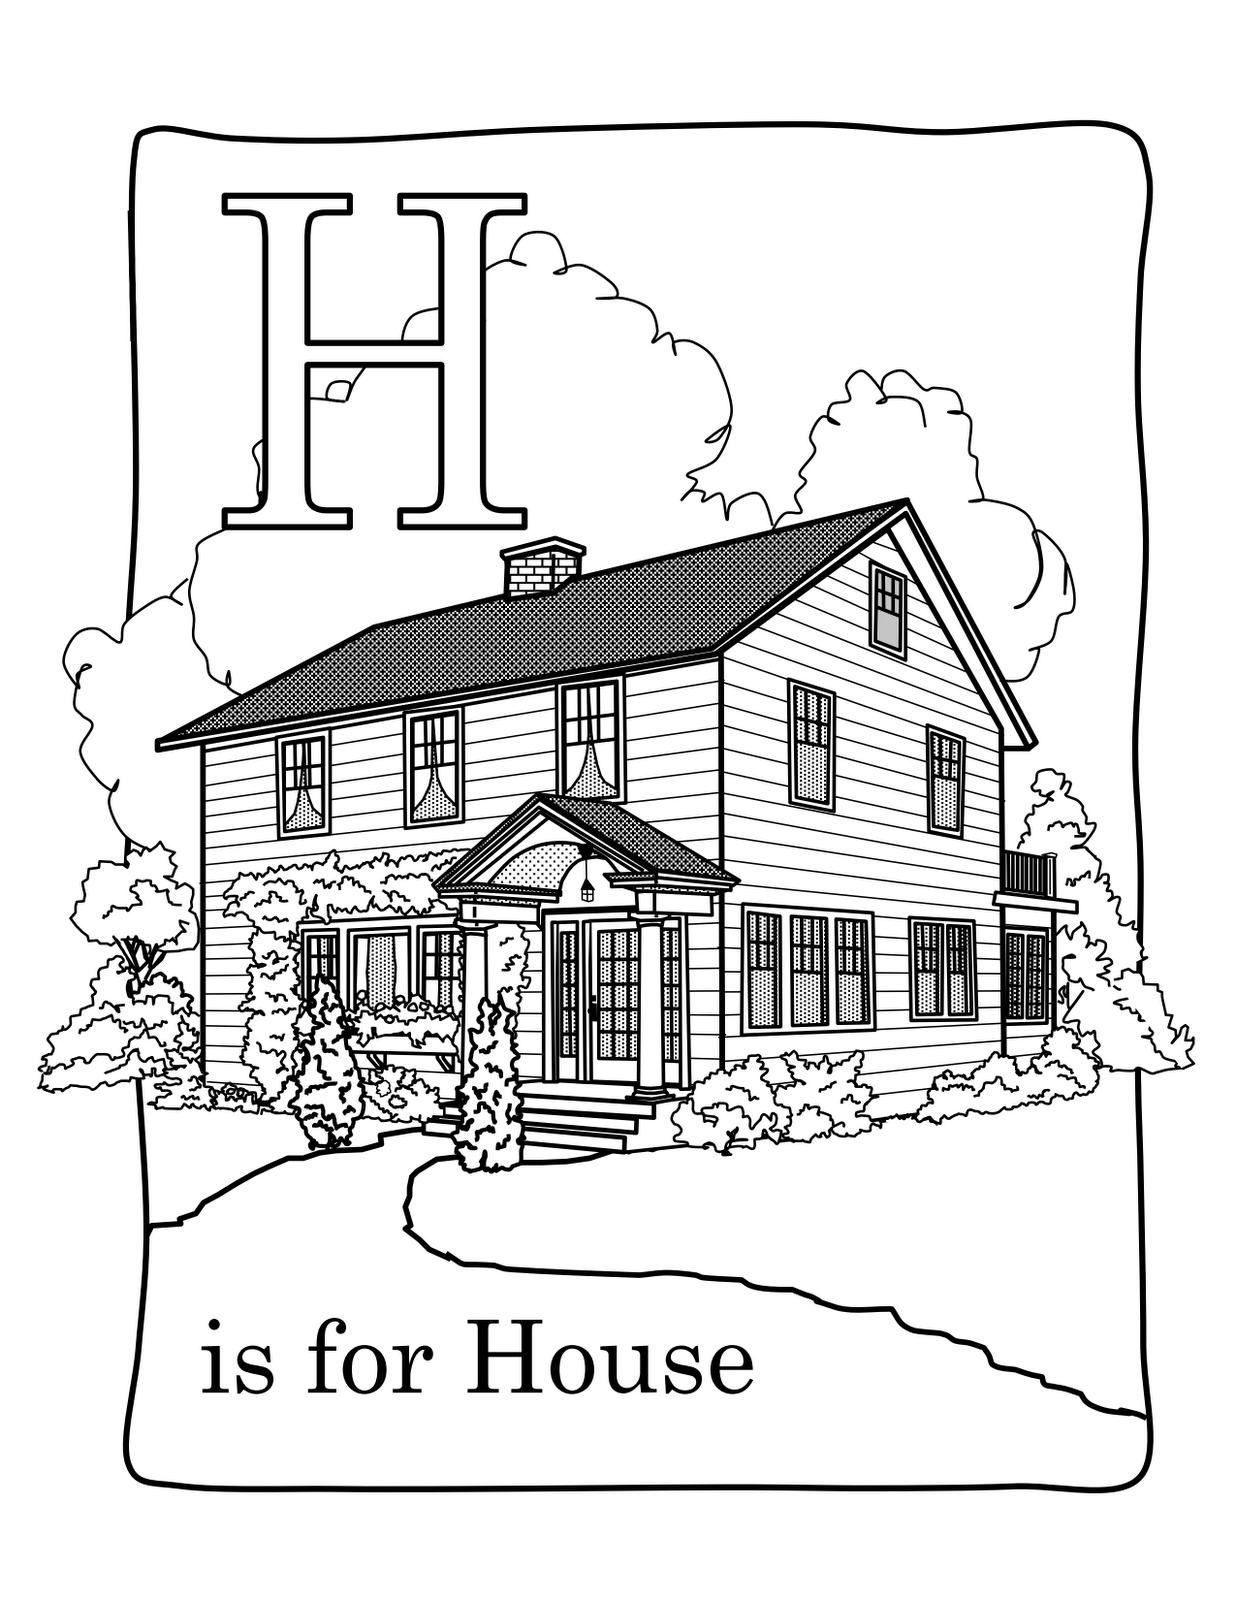 goodness gracious h is for house